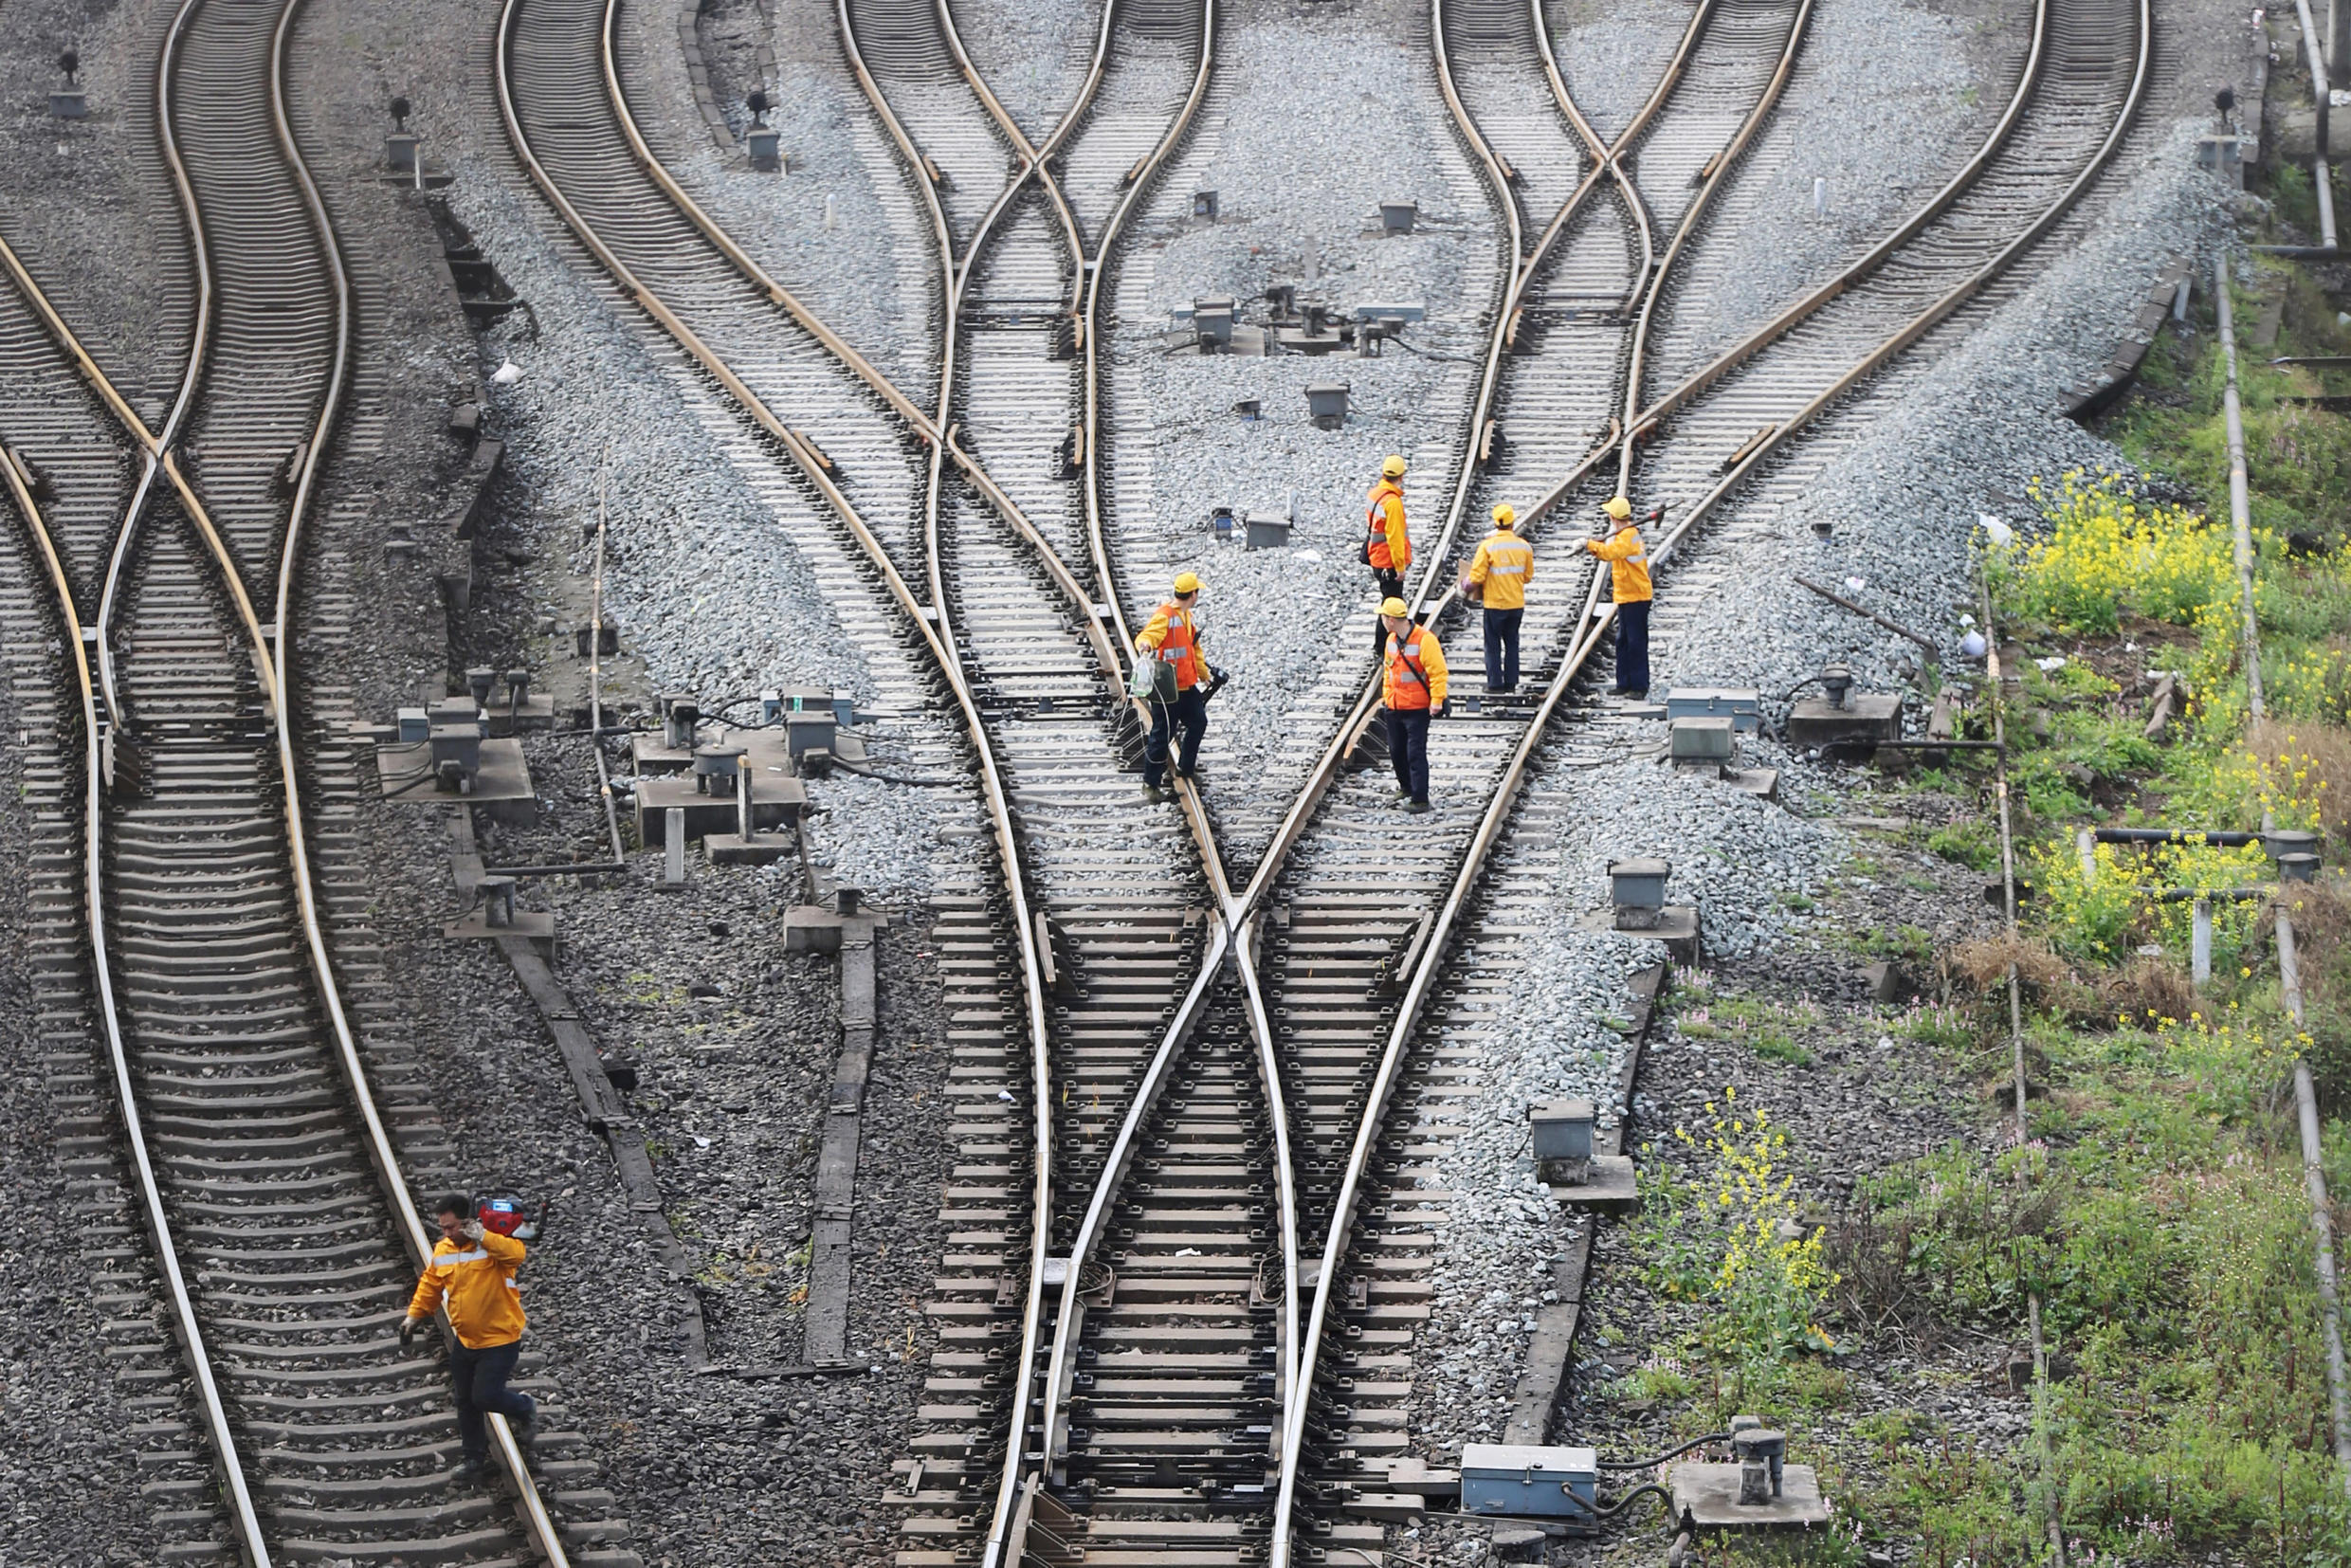 Workers inspect railway tracks, which serve as a part of the Belt and Road freight rail route linking Chongqing to Duisburg, at Dazhou railway station in Sichuan province, China March 14, 2019.